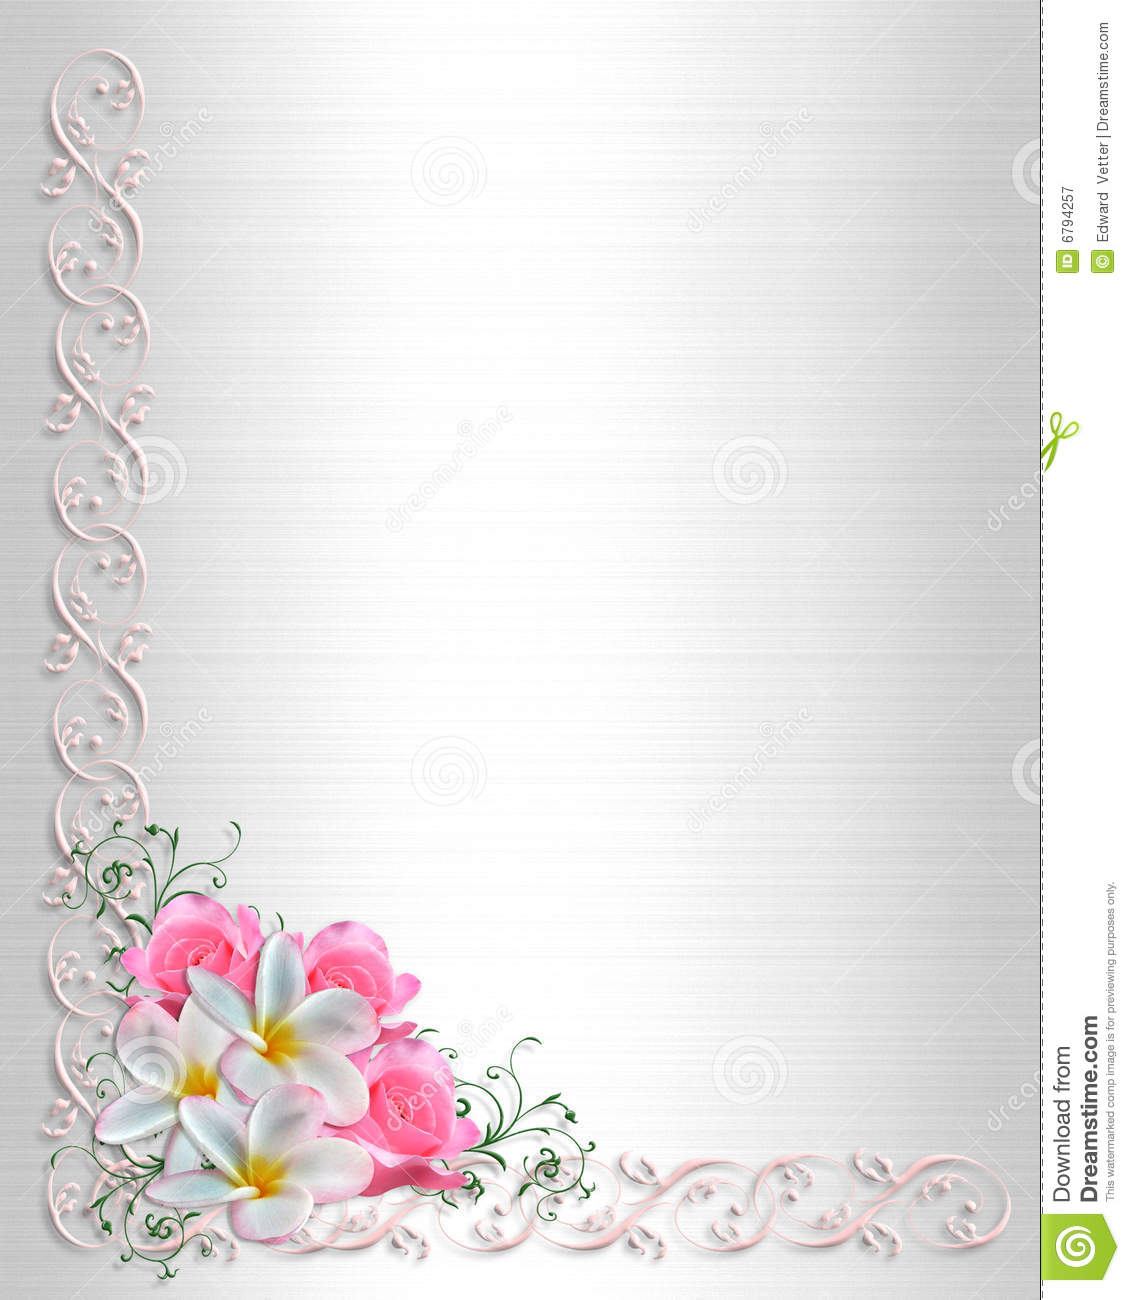 Free Invitation Backgrounds. Wedding Invitation ...